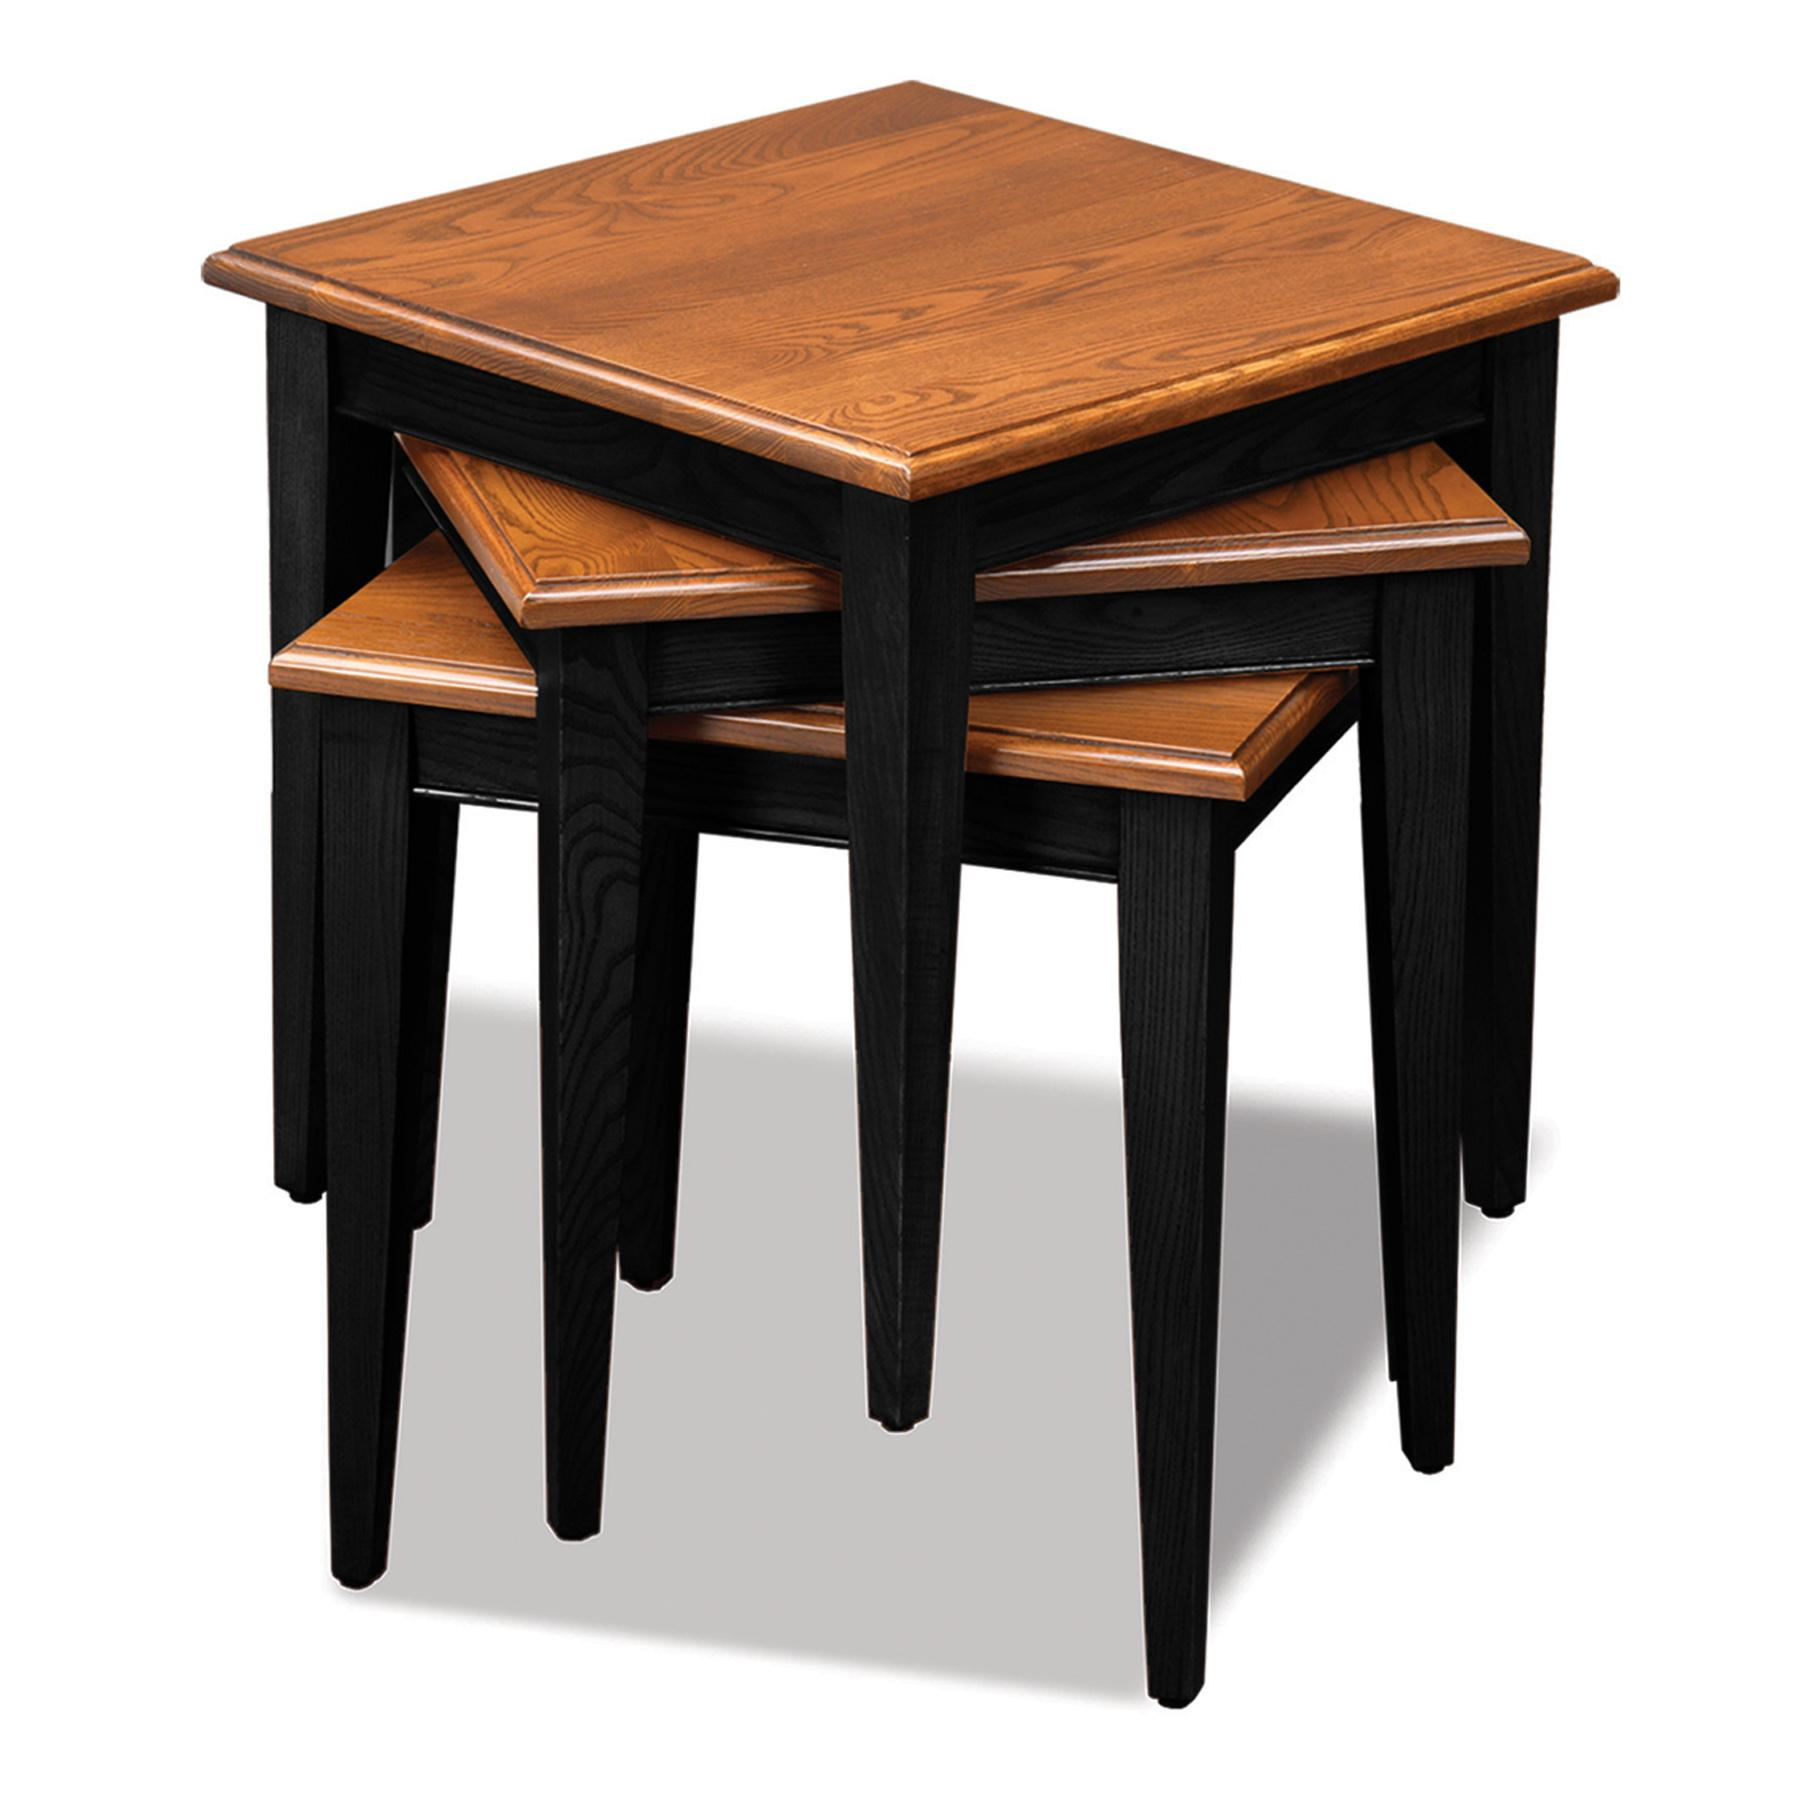 end tables side tables chair side tables chairside tables - Small Scale Coffee Tables